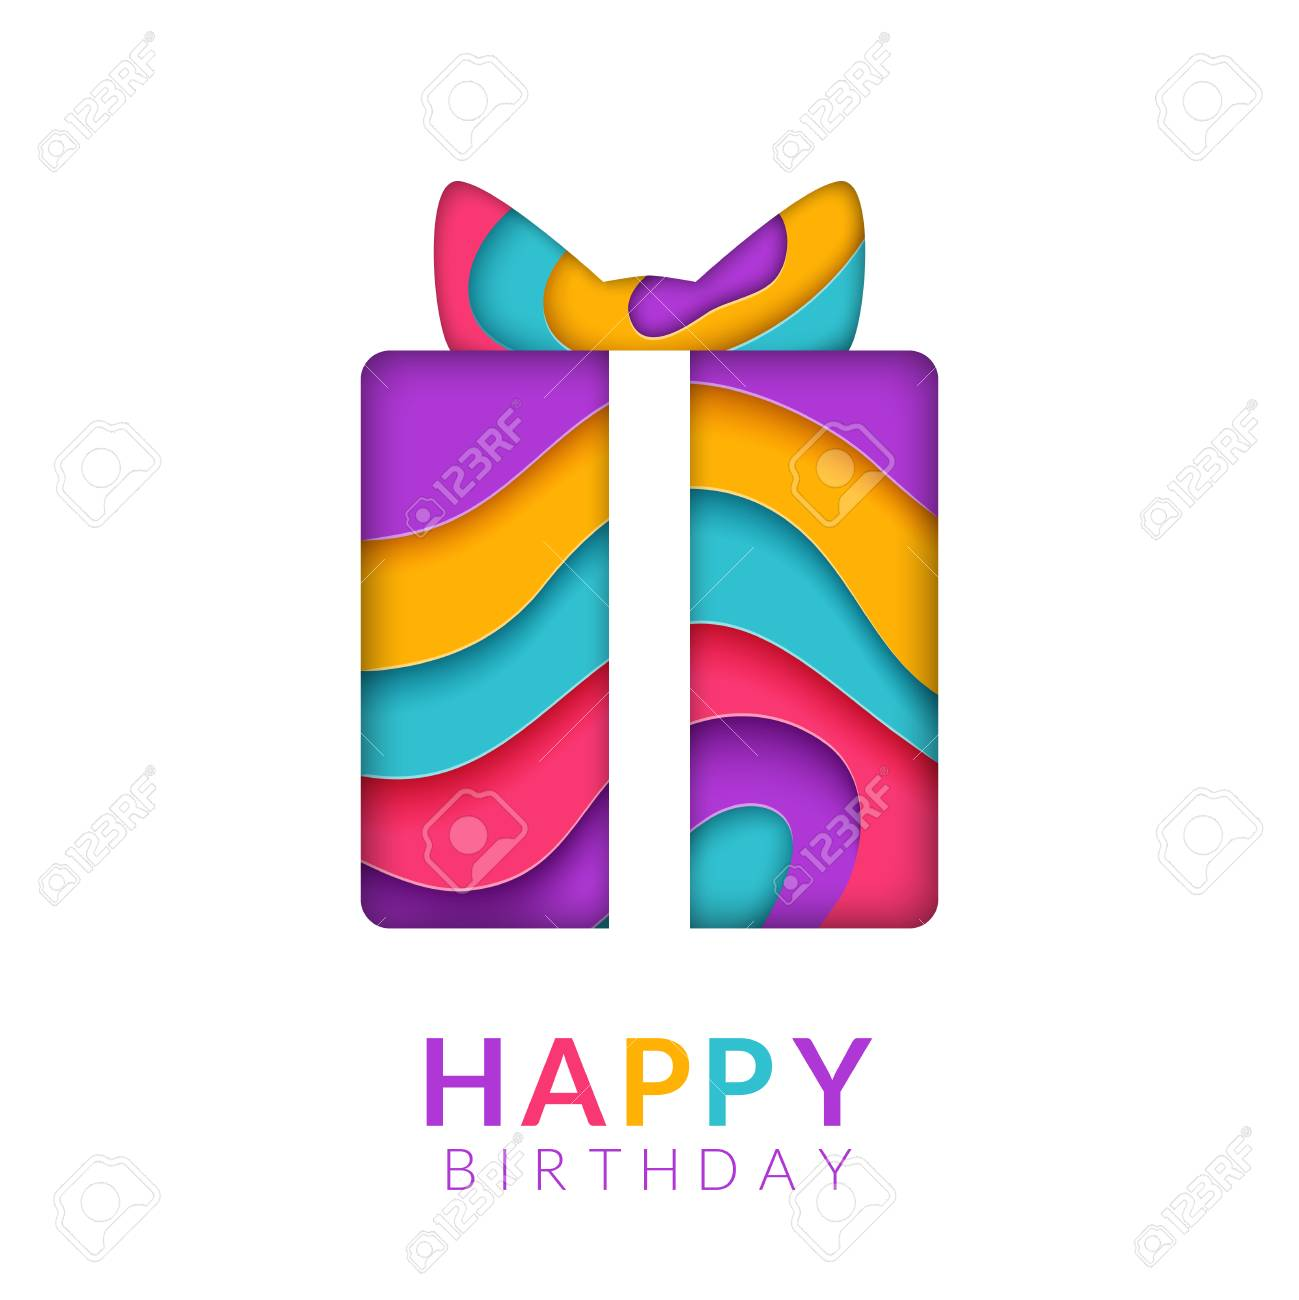 Happy Birthday Greeting Card Template With Papercut Multi Color